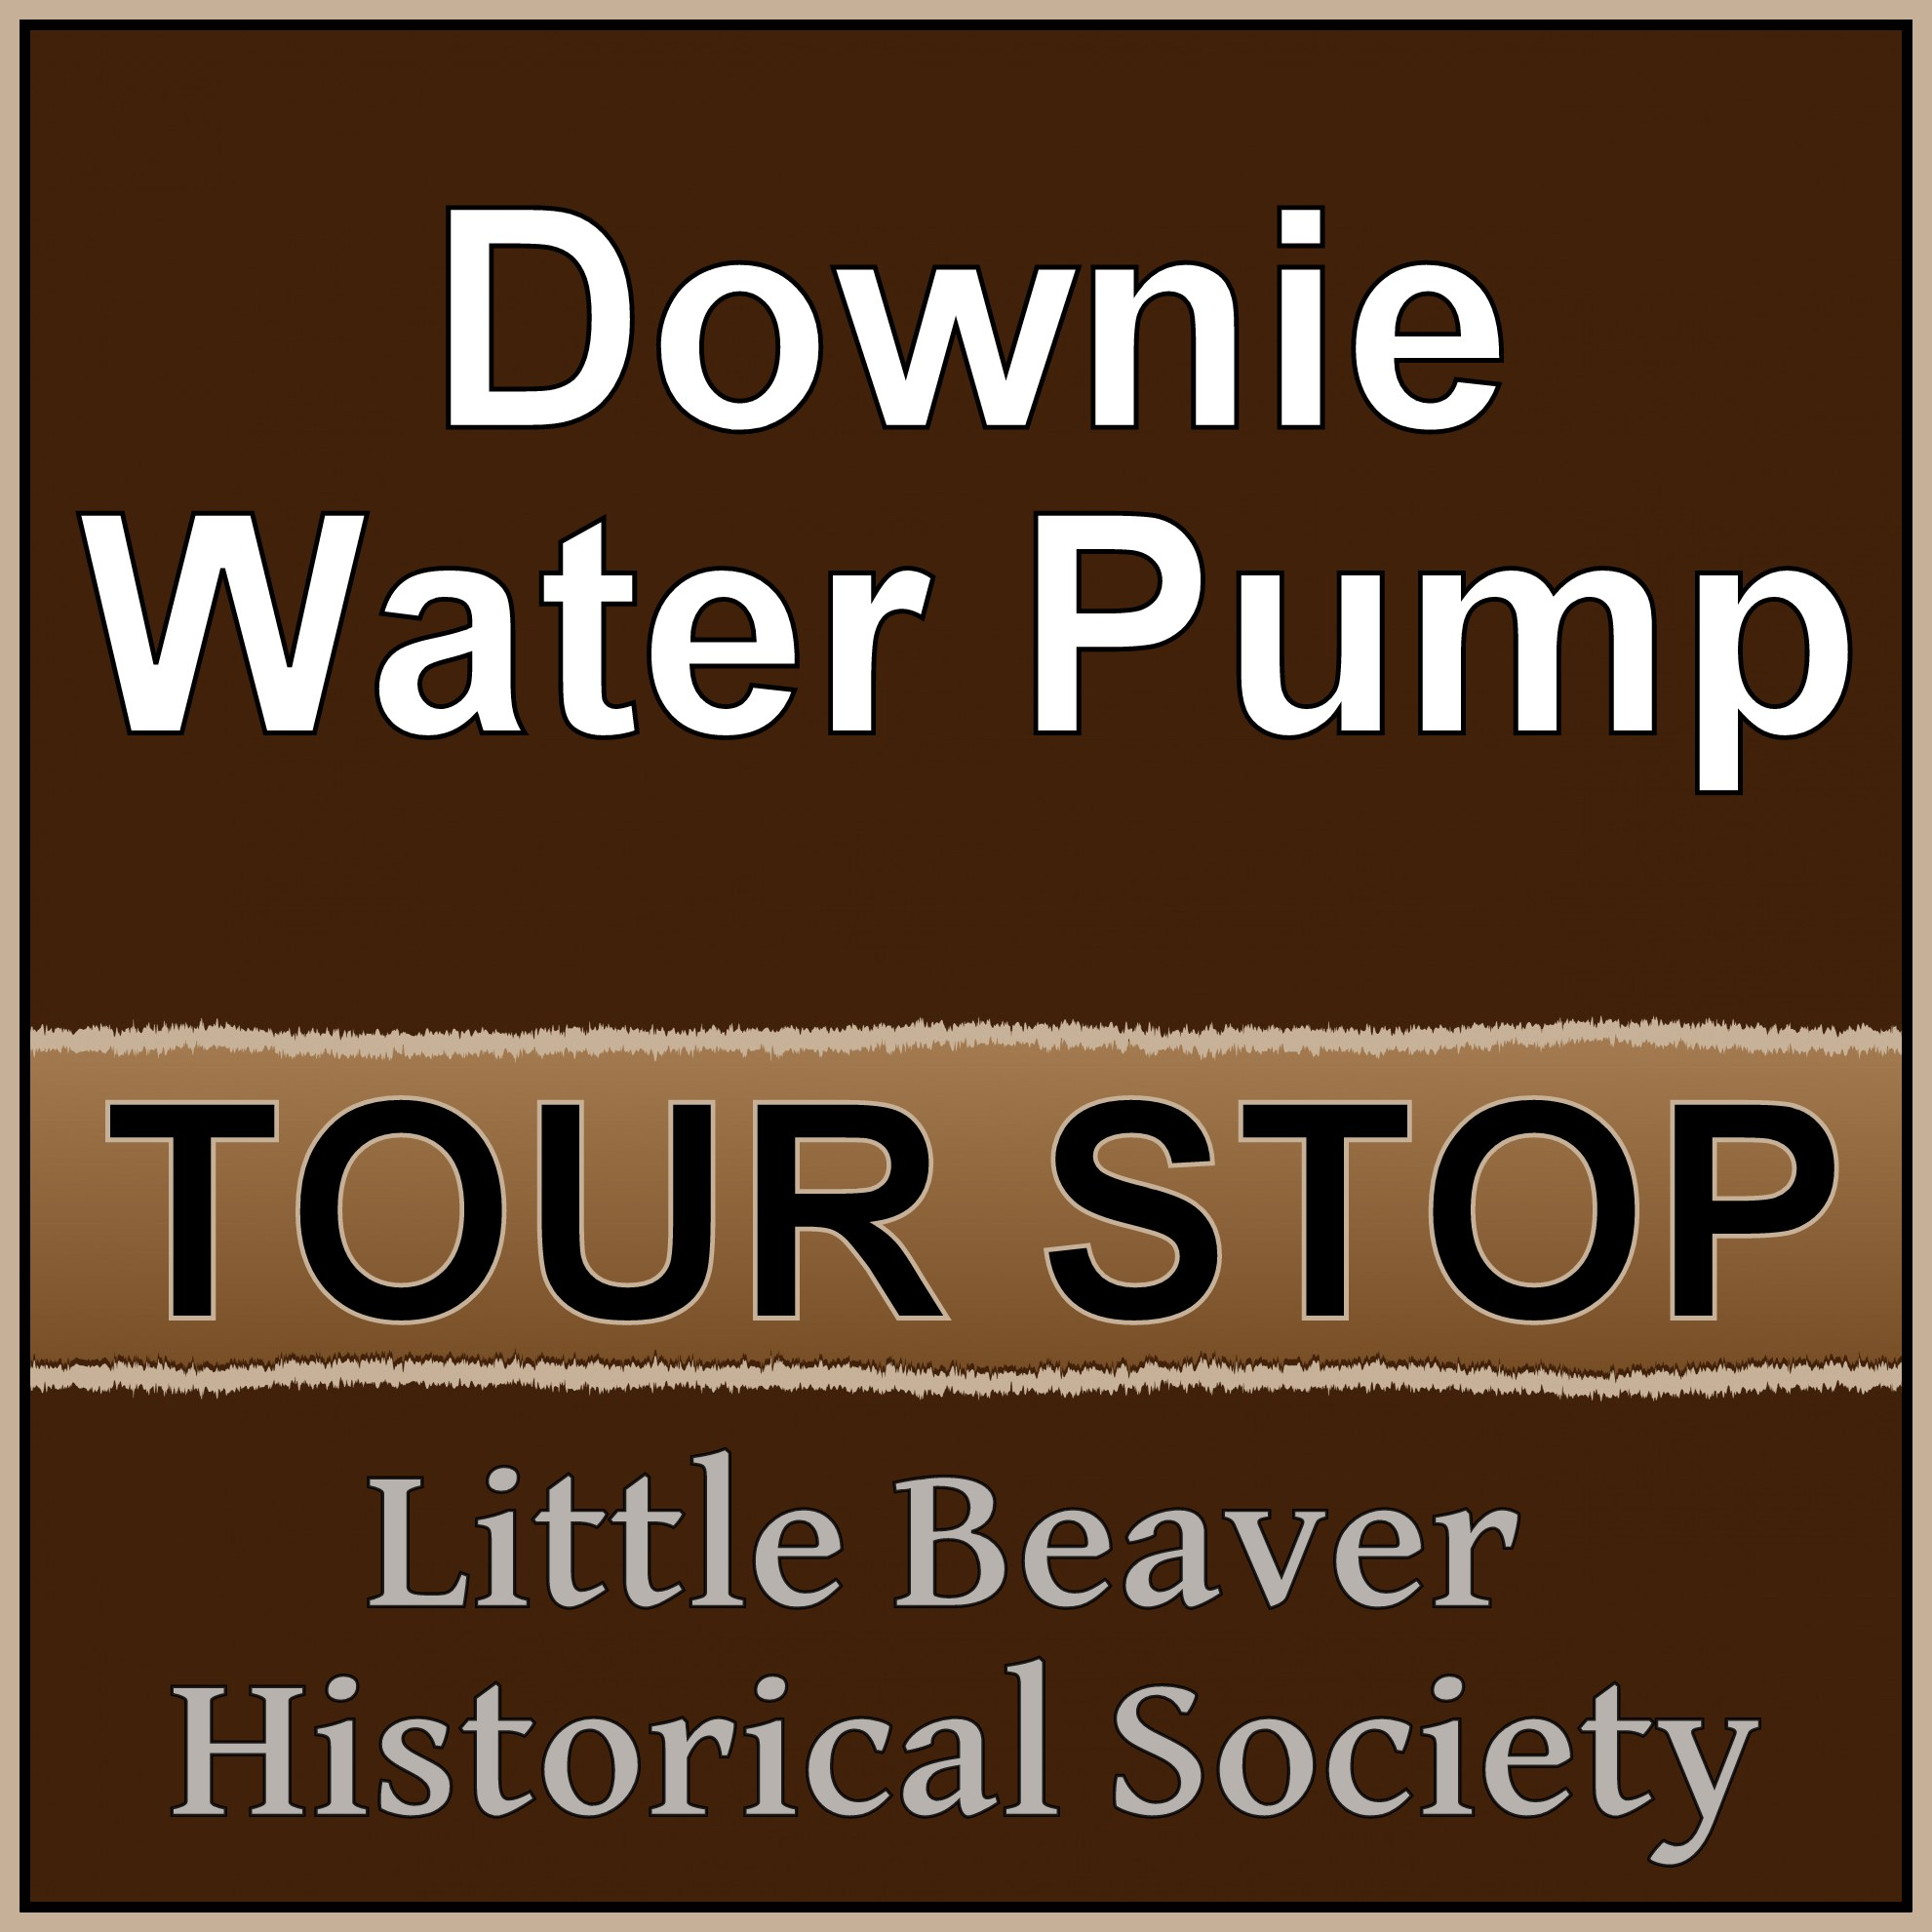 LBHS Tour Stop: Downie Water Pump